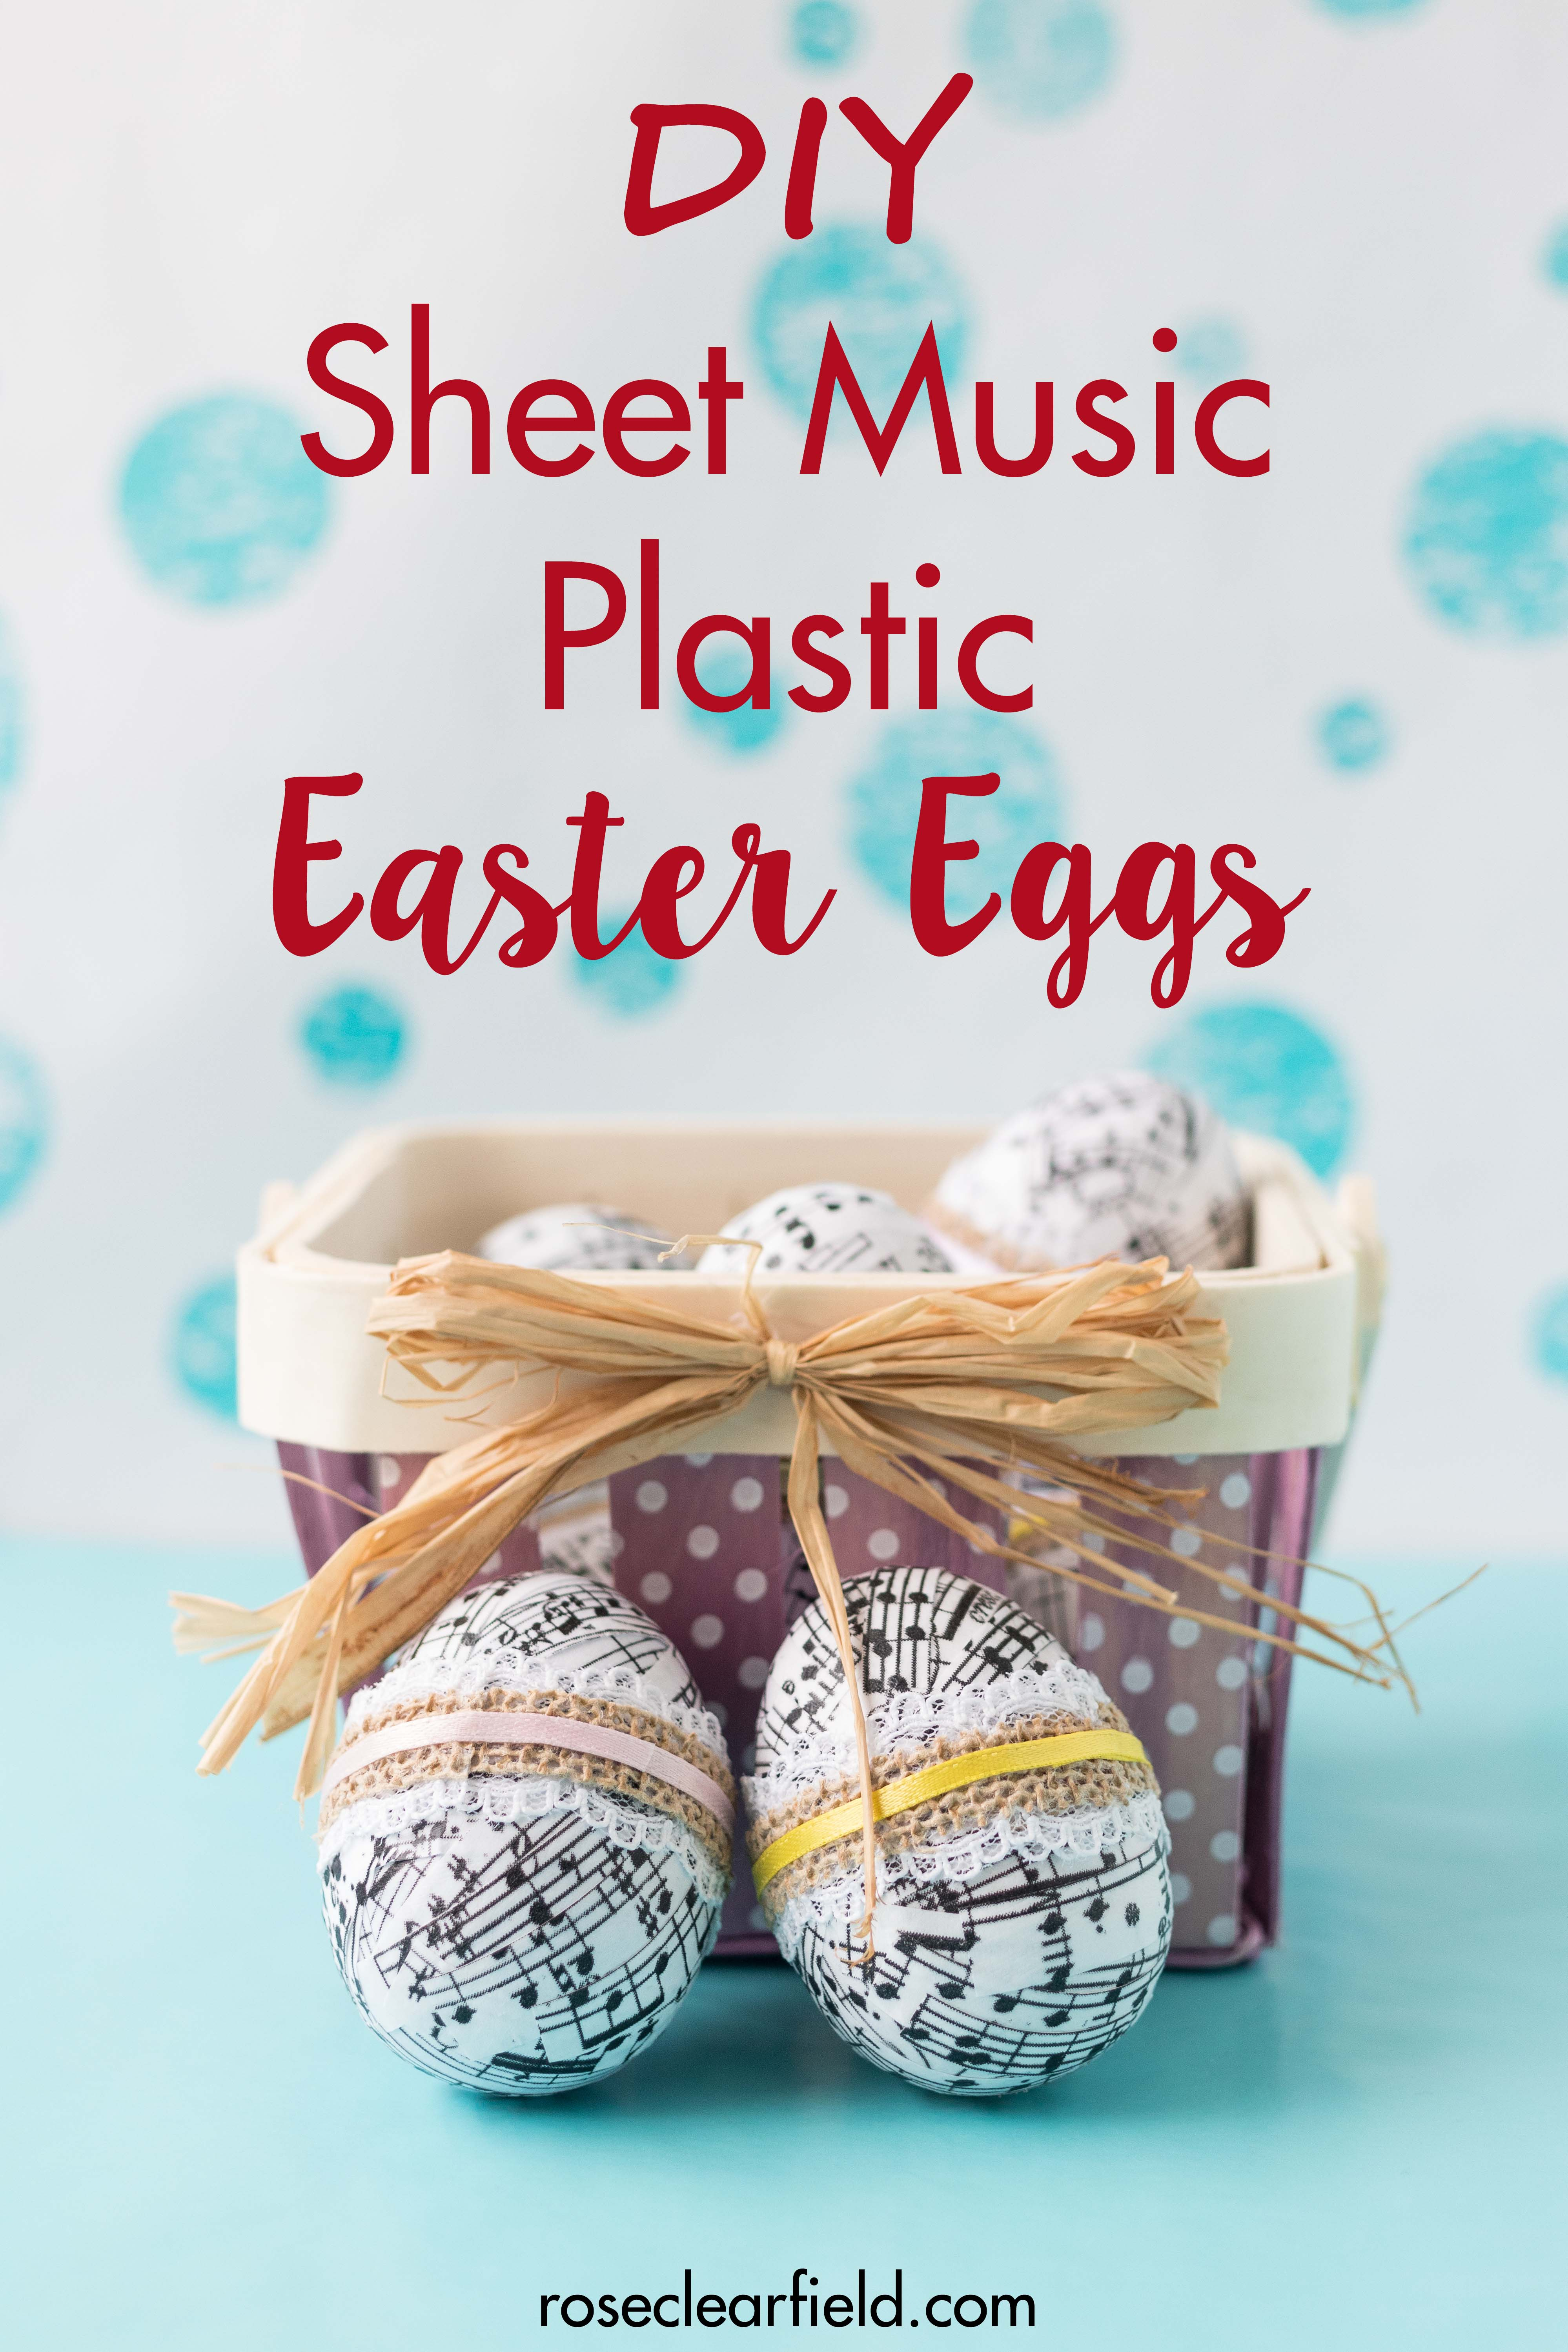 DIY sheet music plastic Easter eggs, a fun, kid-friendly Easter decoration! #Easter #DIY #Eastereggs | https://www.roseclearfield.com